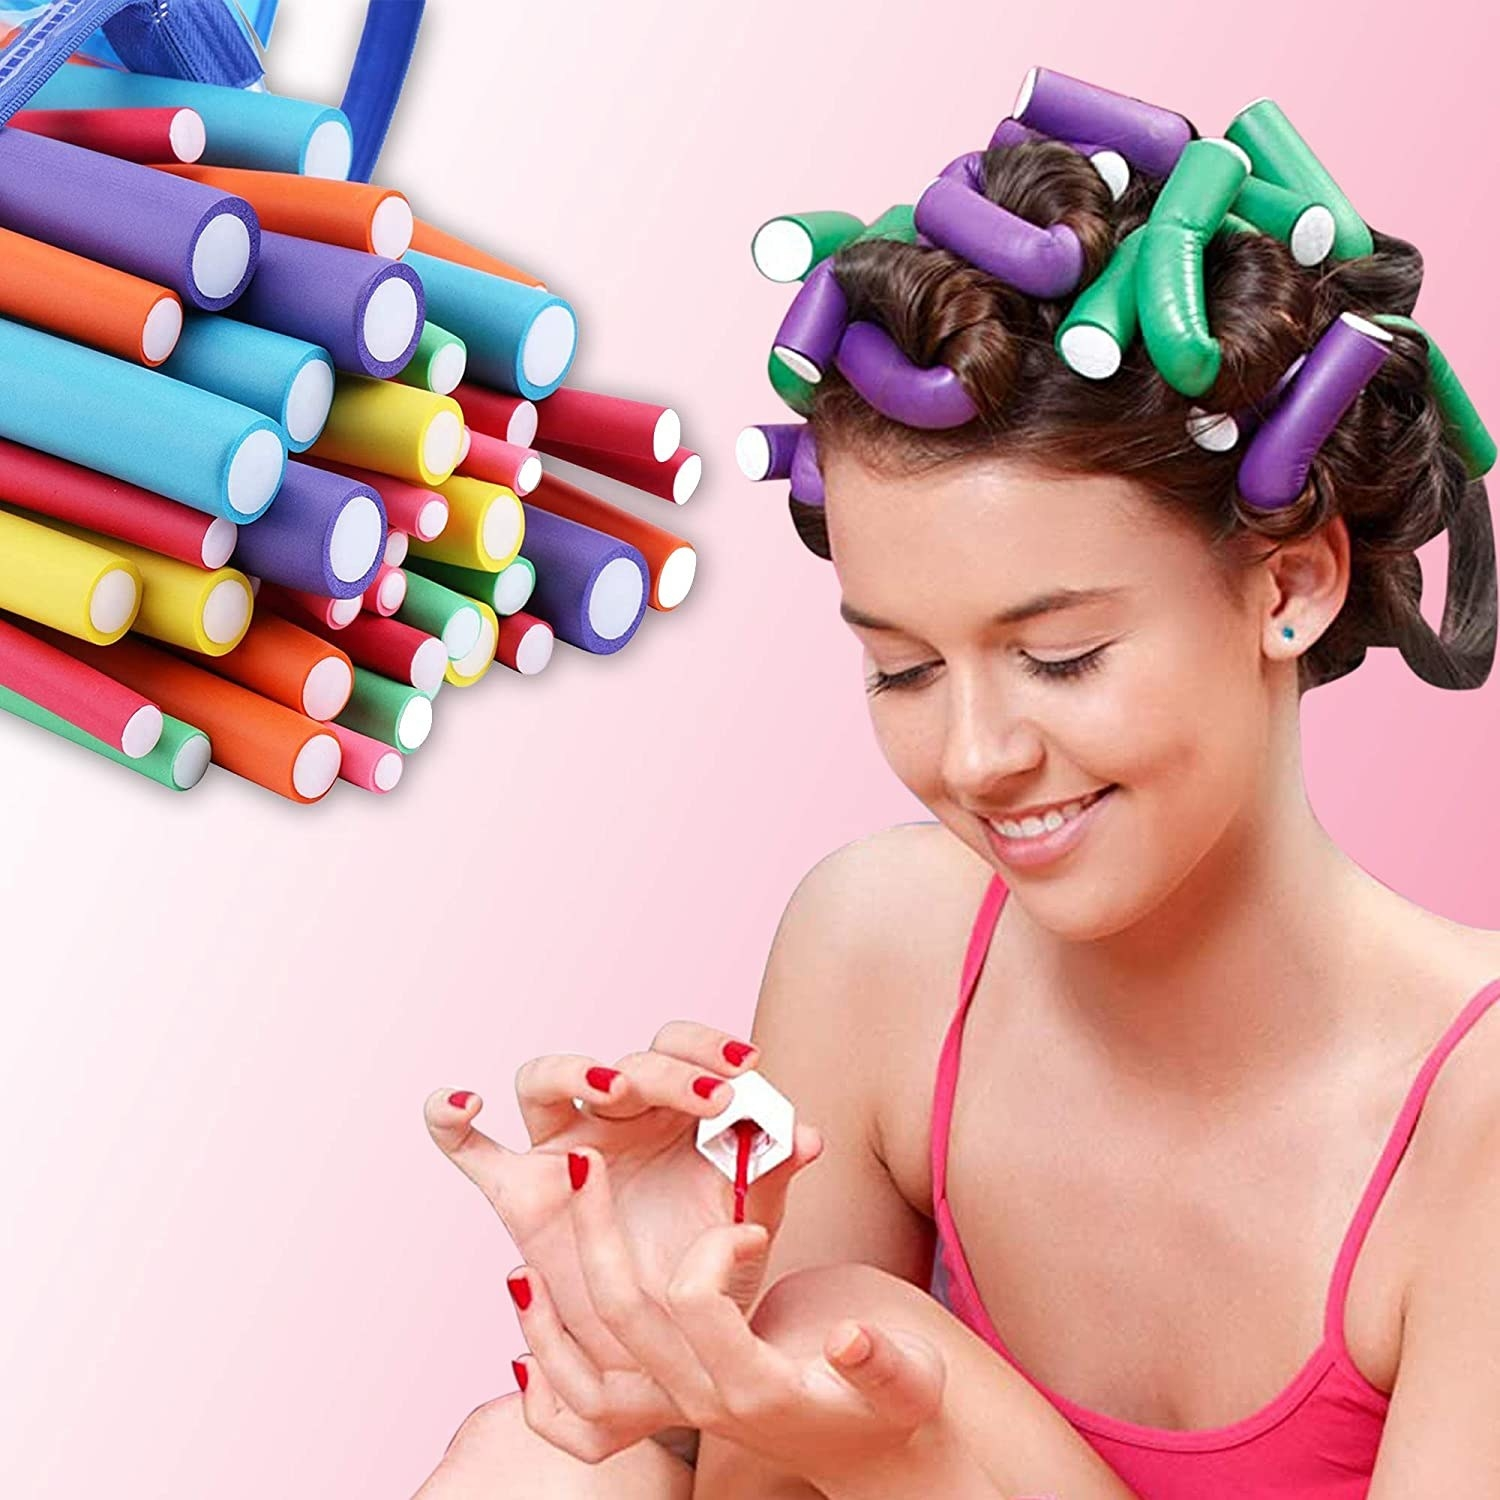 A person wearing curling rods on their hair while applying nail paint.